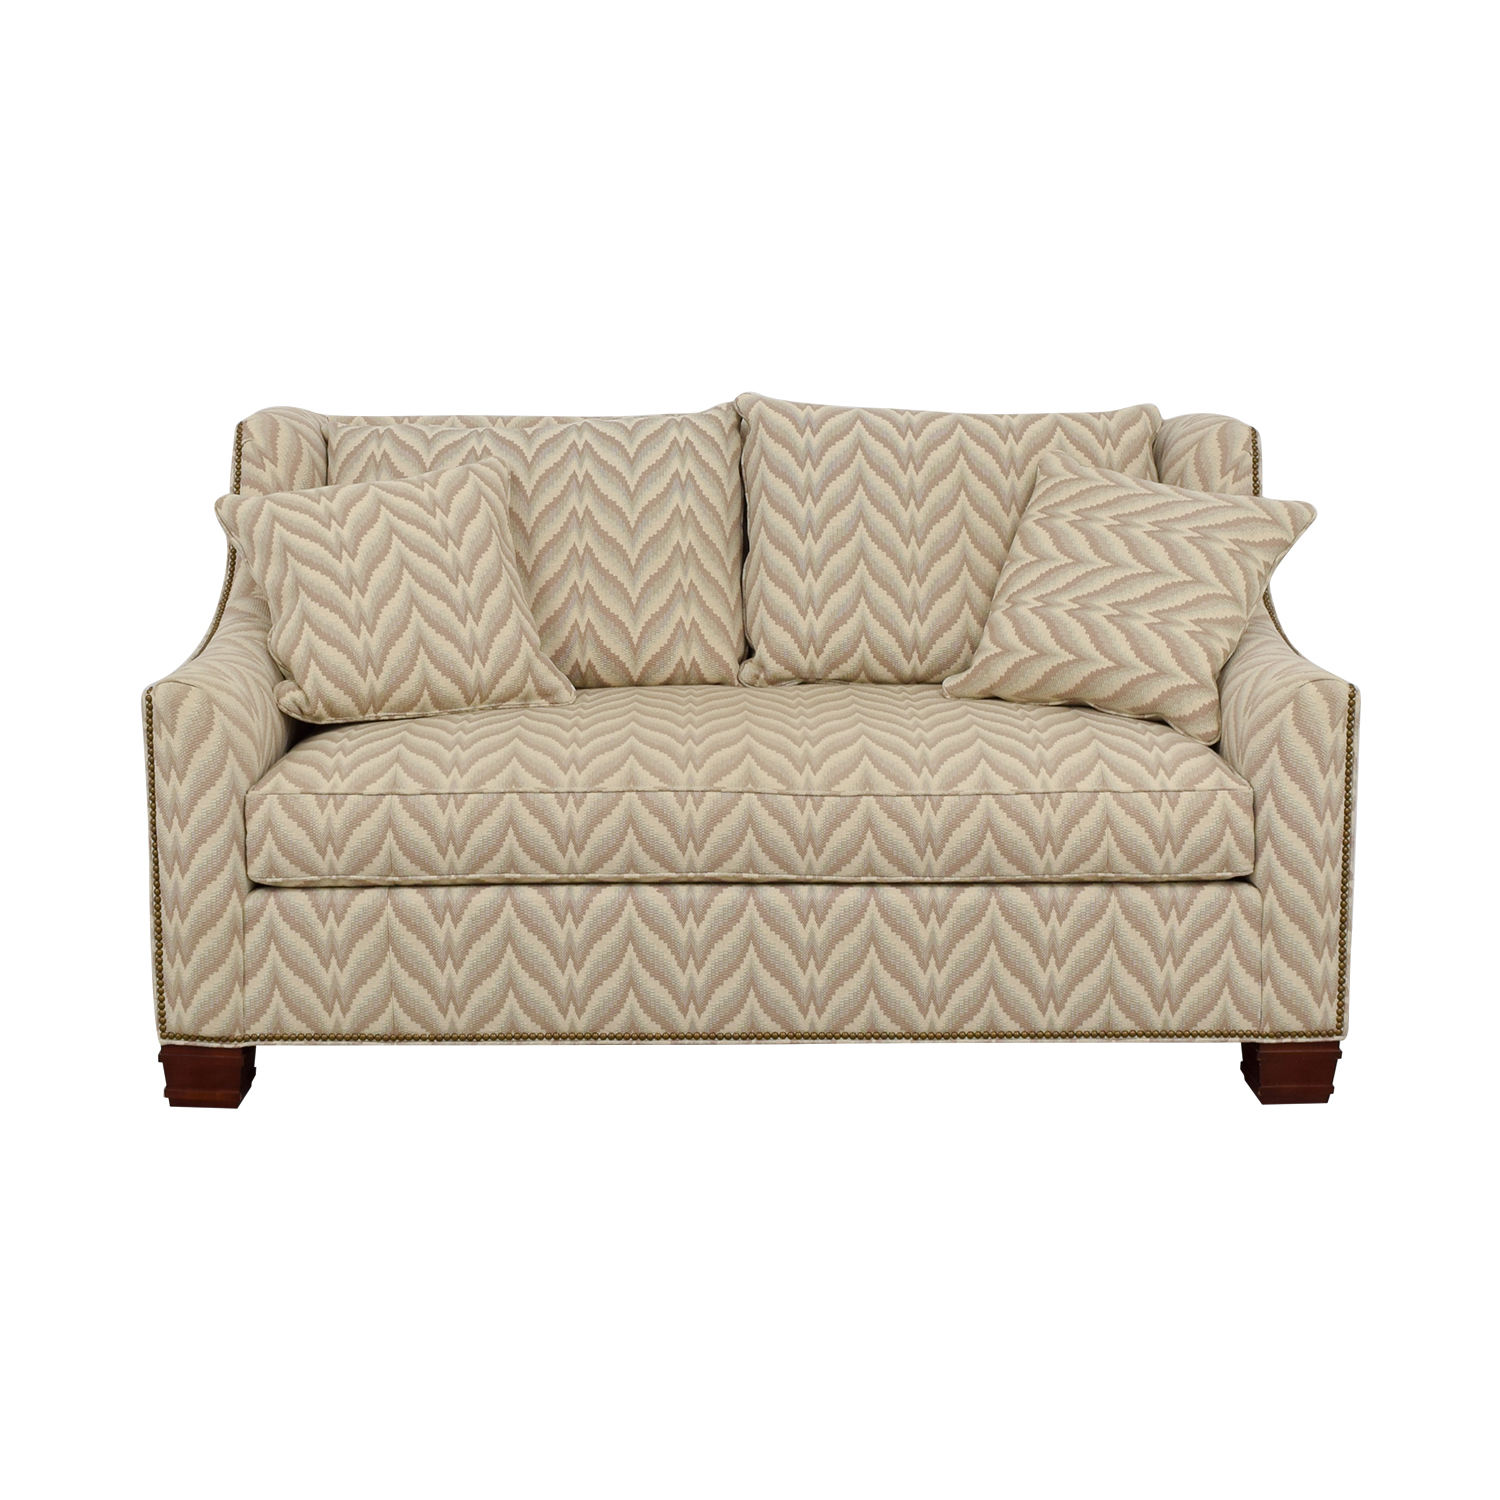 The Hickory Chair Furniture Co Chevron Nailhead Loveseat Used